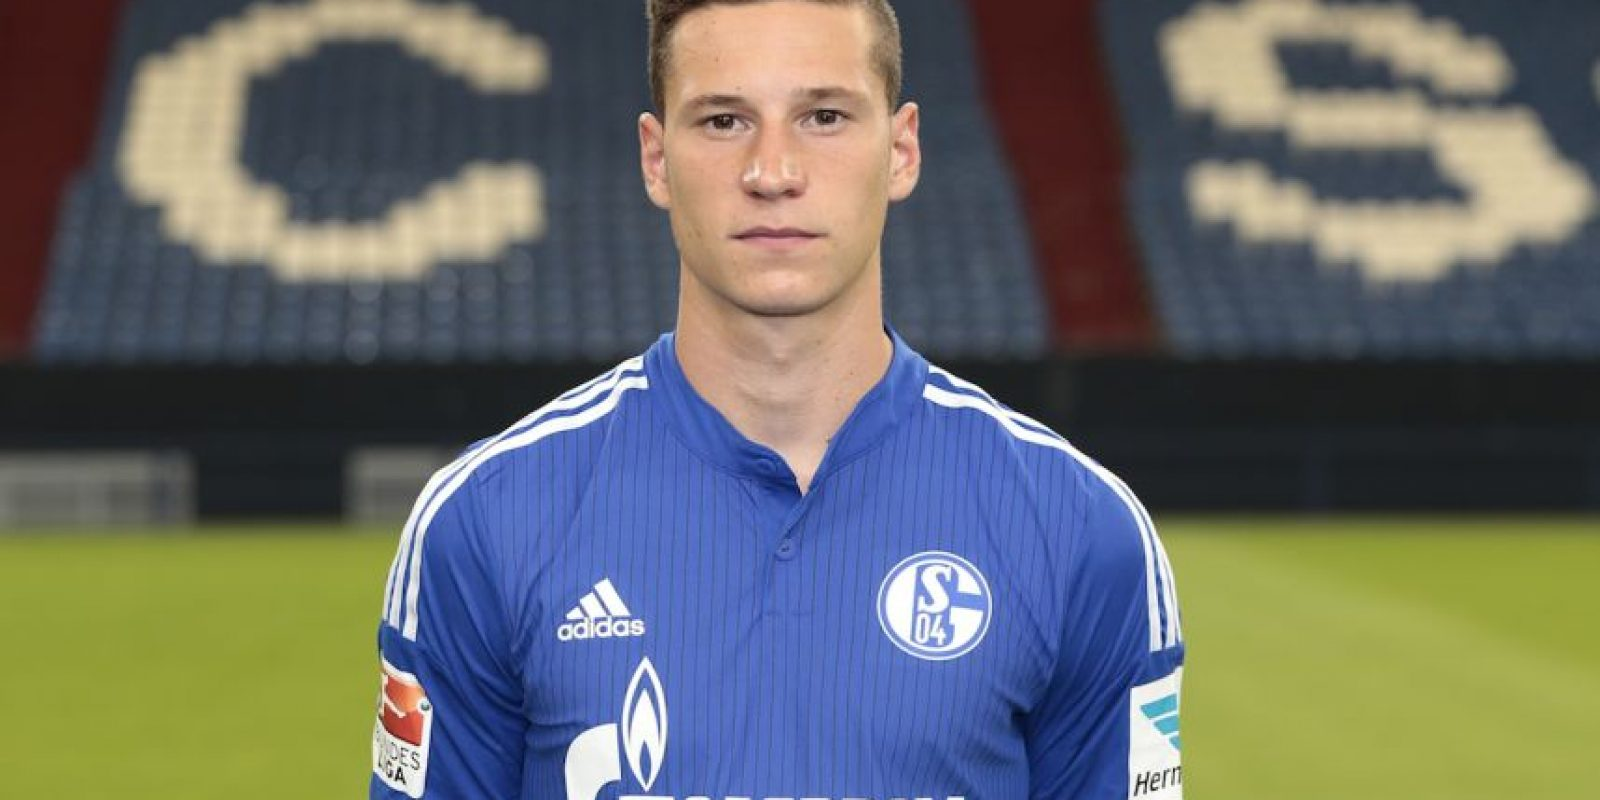 12. Julian Draxler (Schalke 04/Alemania) Foto: Getty Images